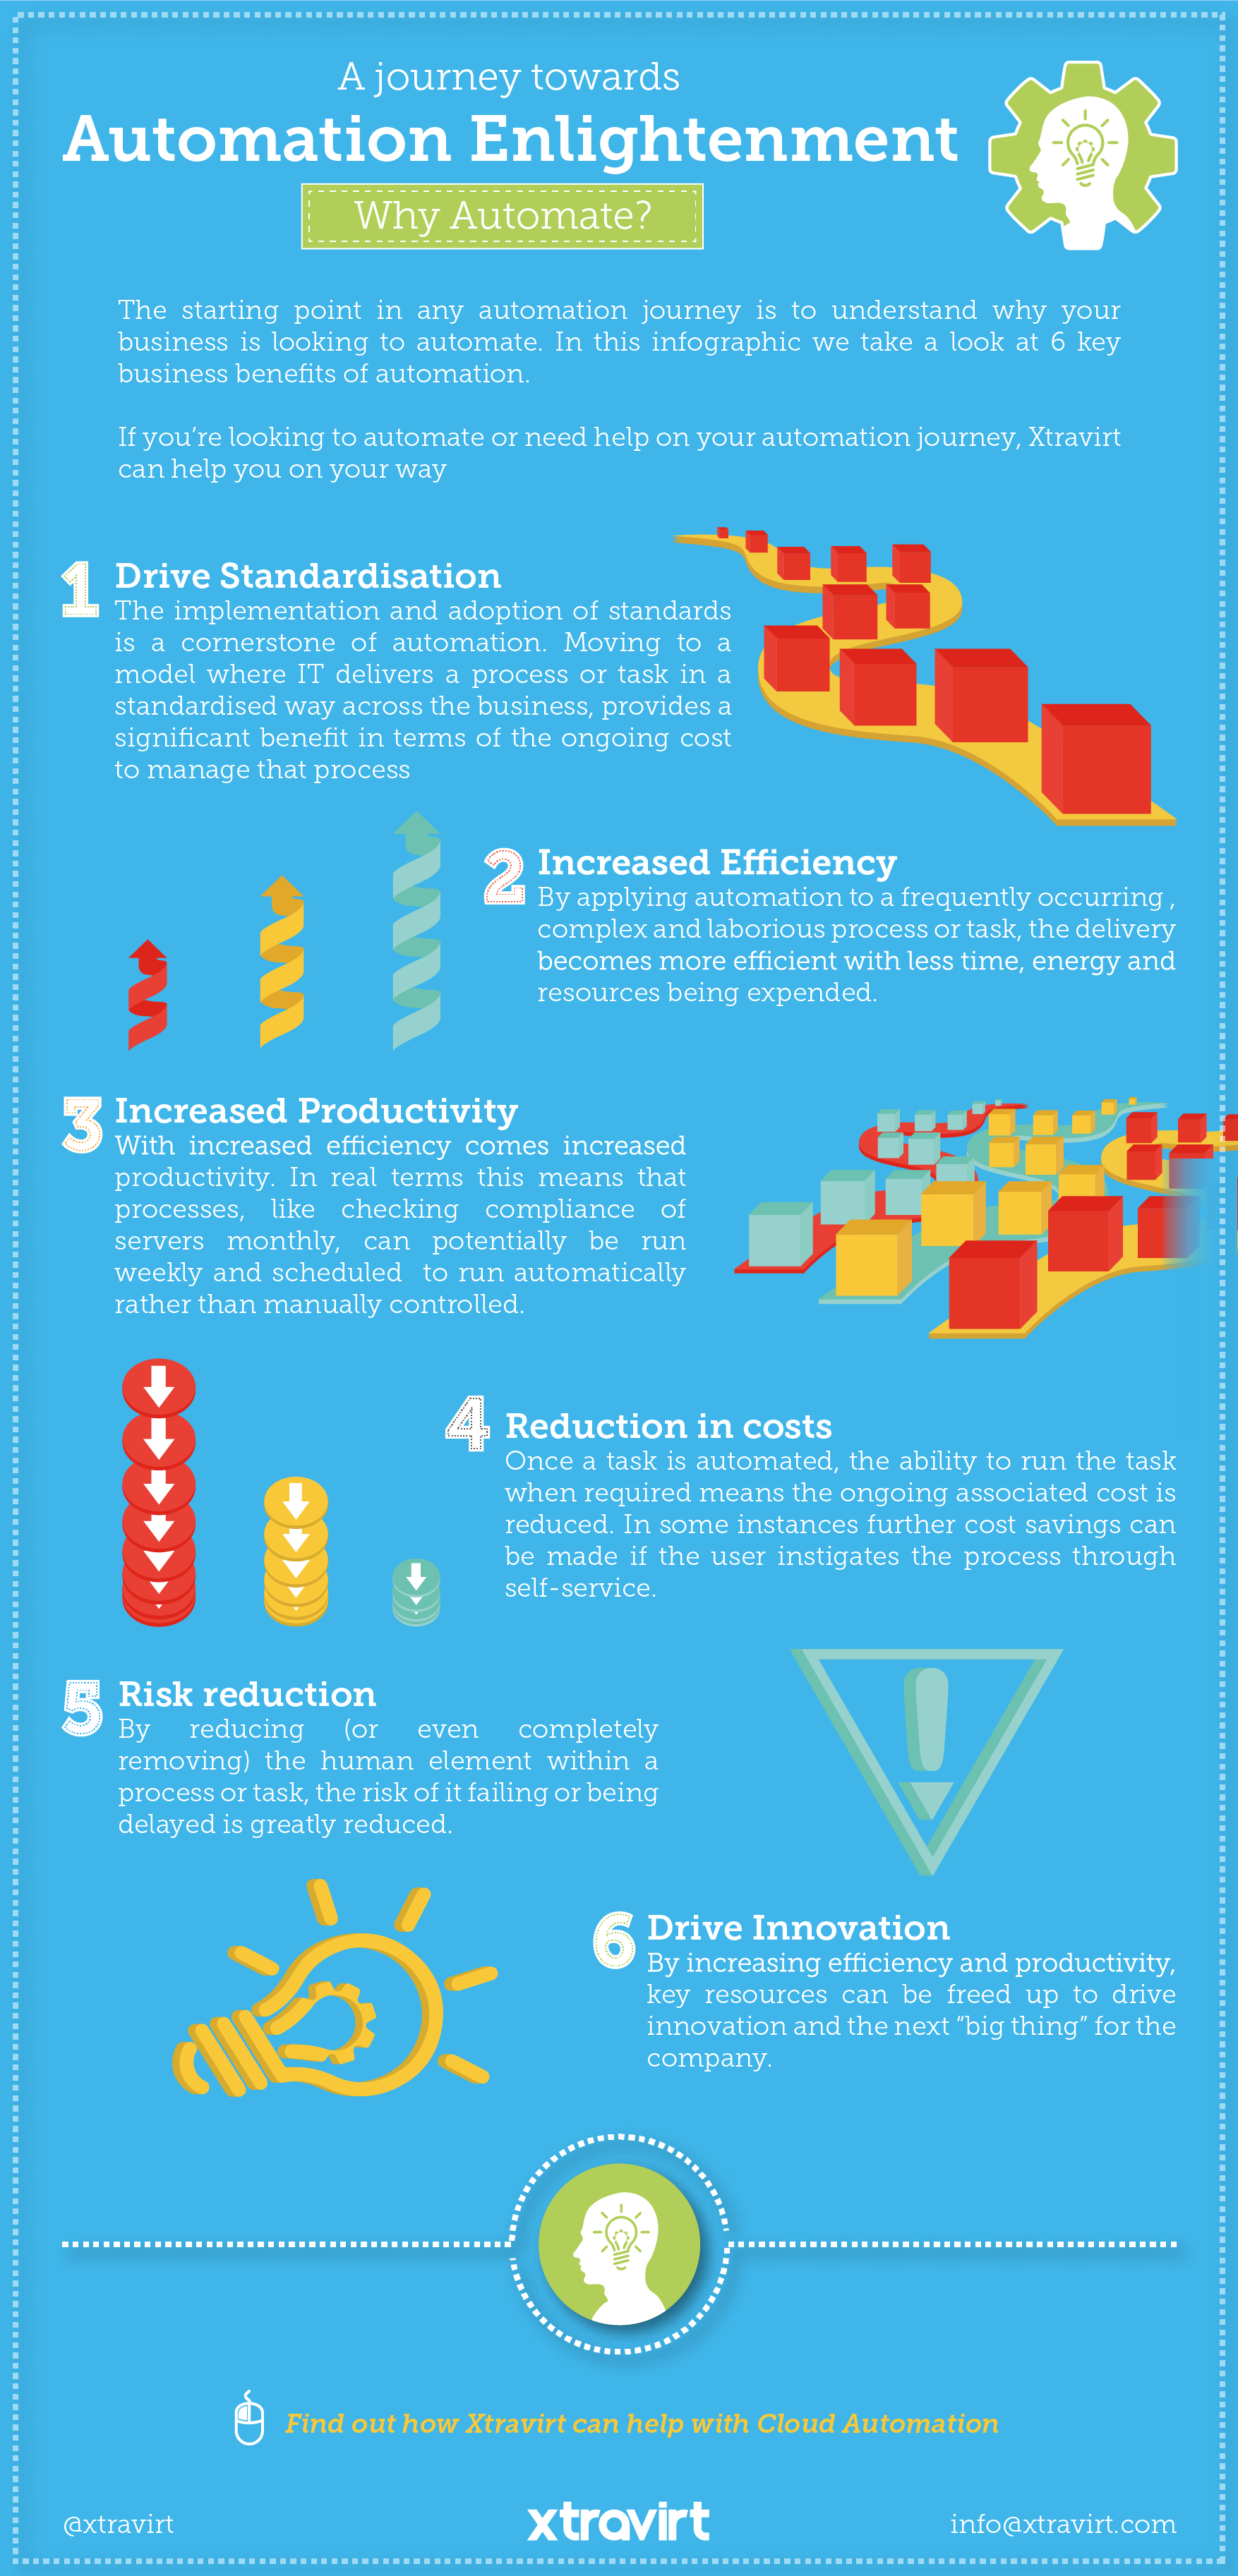 A journey towards Automation Enlightenment, Why Automate? Infographic